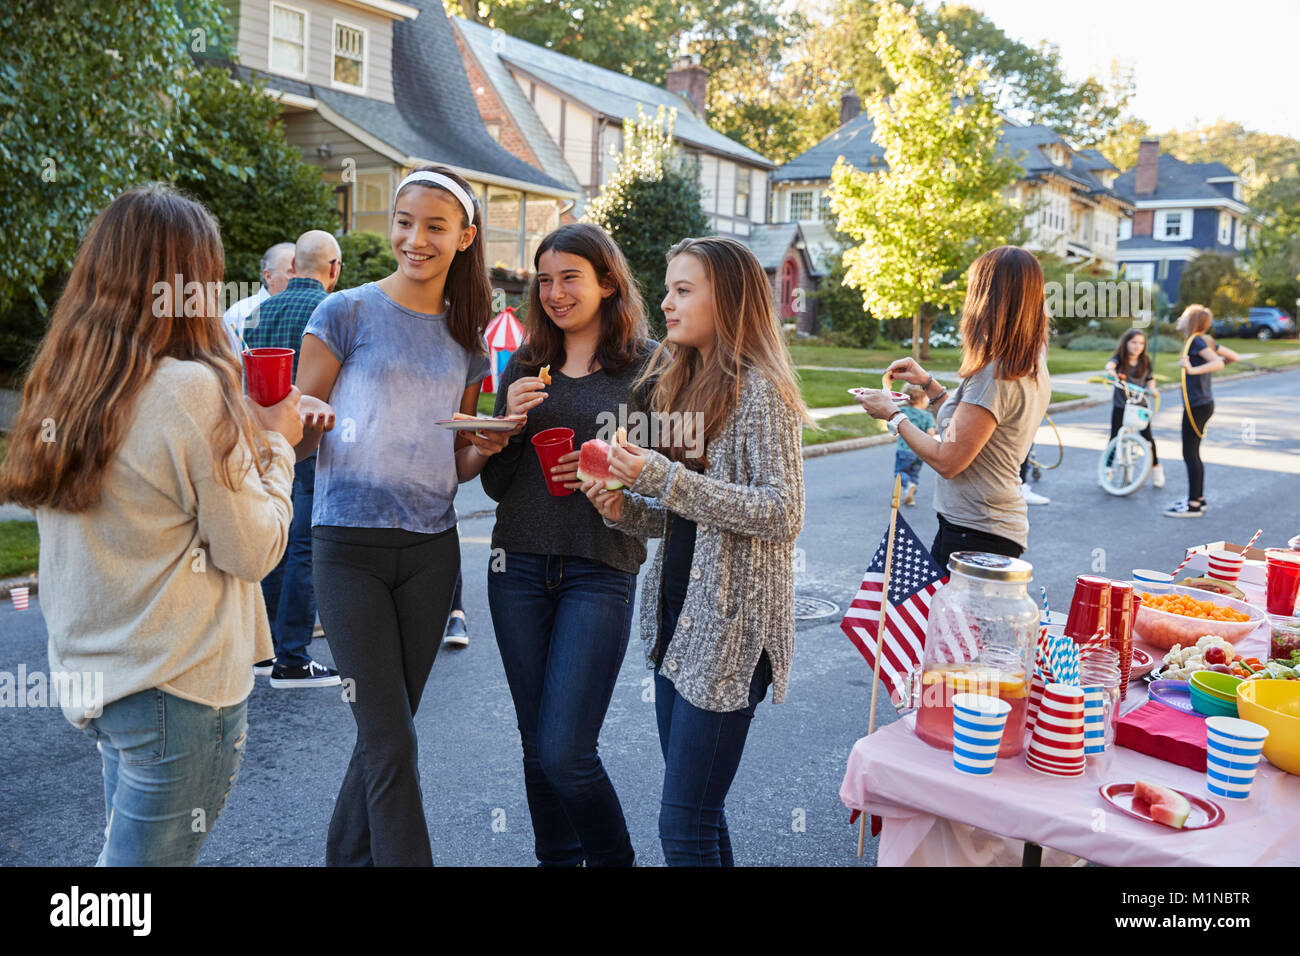 Teenagers talking in the street at a block party - Stock Image